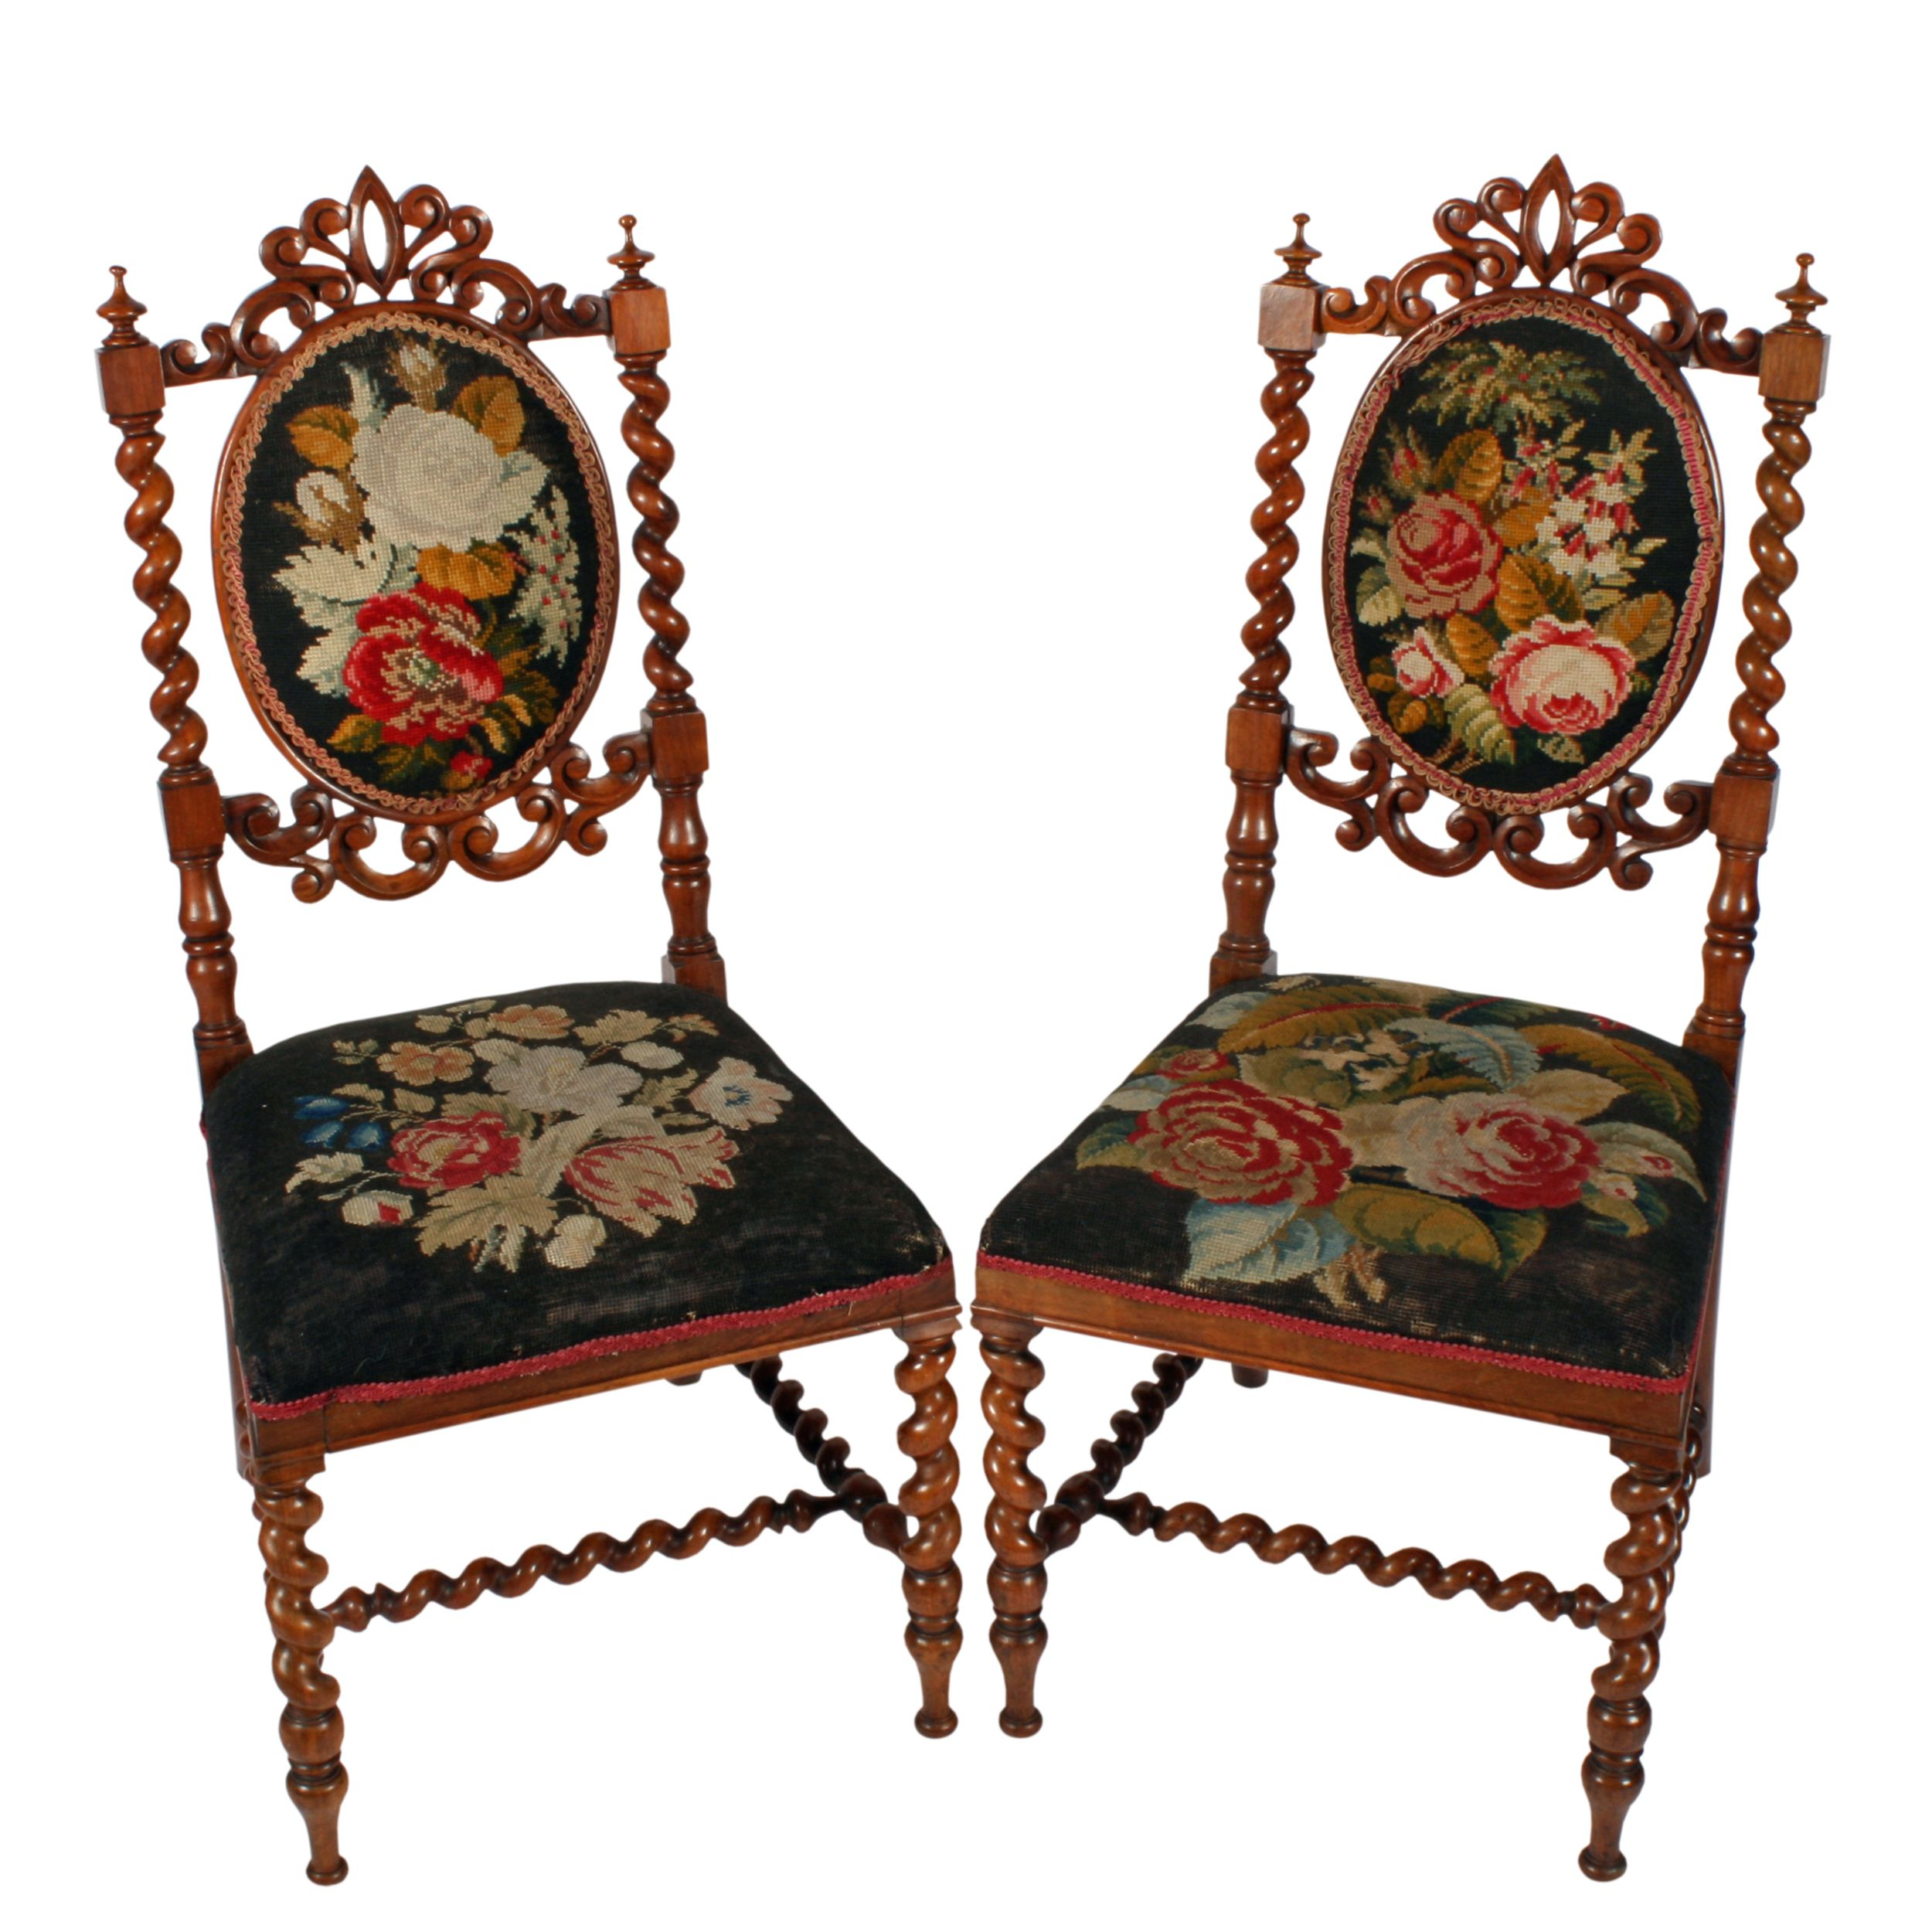 Antique victorian bedroom furniture - Pair Of Antique Victorian Walnut Cameo Back Bedroom Chairs The Fine Carved Antique Walnut Chairs Are Available To Buy Now Online Or In Store